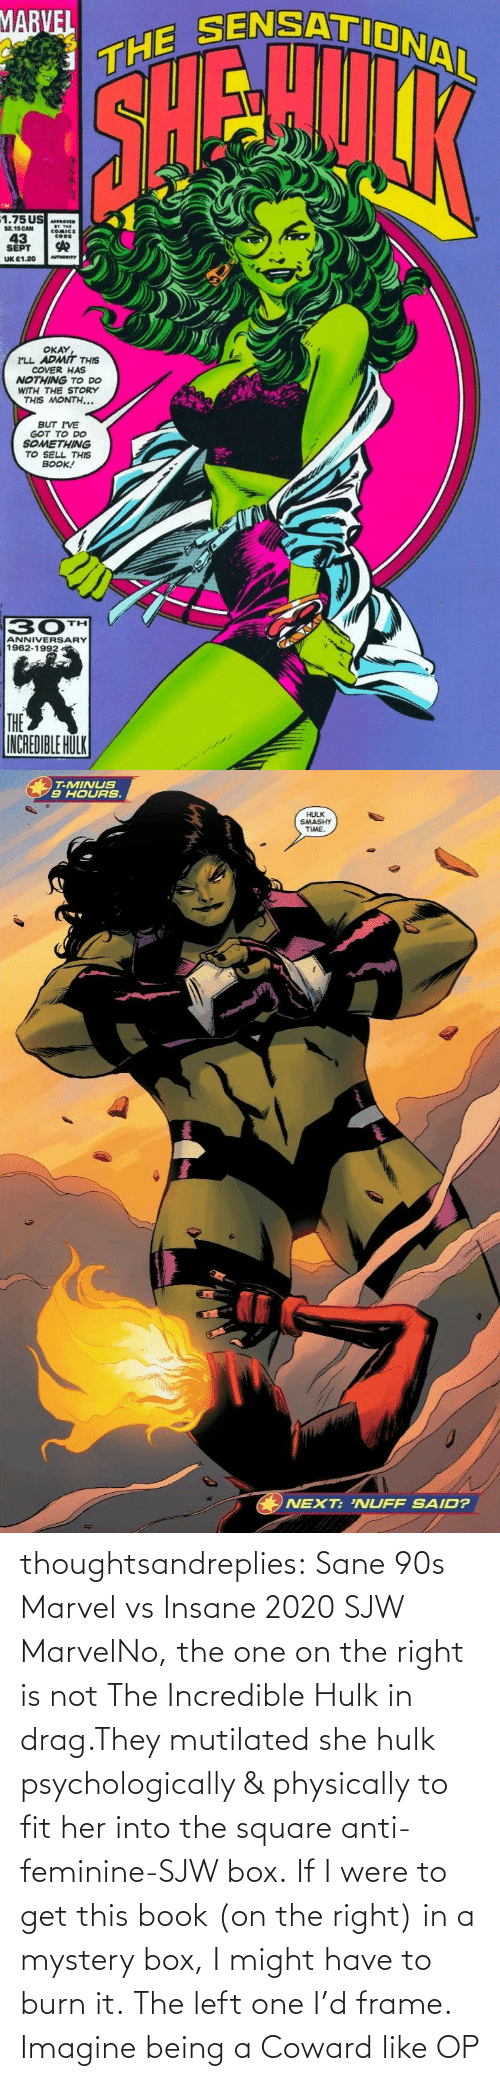 fit: thoughtsandreplies:  Sane 90s Marvel vs Insane 2020 SJW MarvelNo, the one on the right is not The Incredible Hulk in drag.They mutilated she hulk psychologically & physically to fit her into the square anti-feminine-SJW box. If I were to get this book (on the right) in a mystery box, I might have to burn it. The left one I'd frame.    Imagine being a Coward like OP